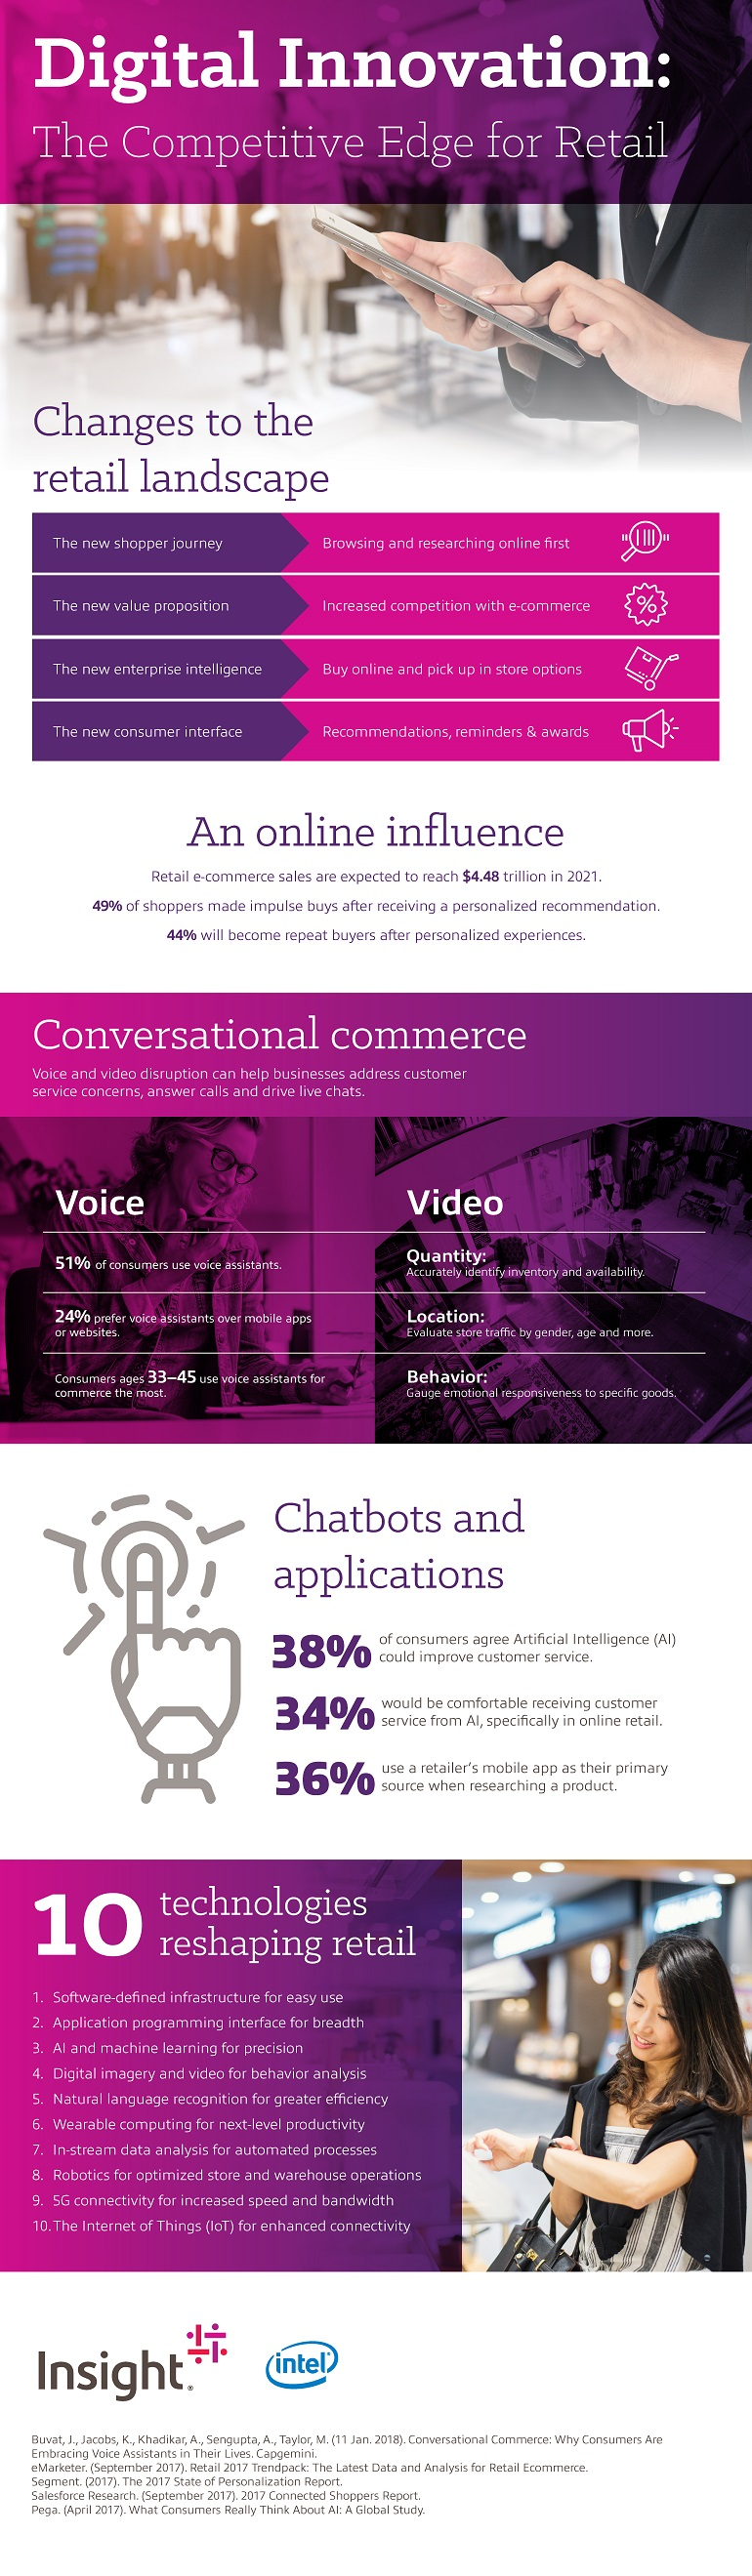 Digital Innovation: The Competitive Edge for Retail